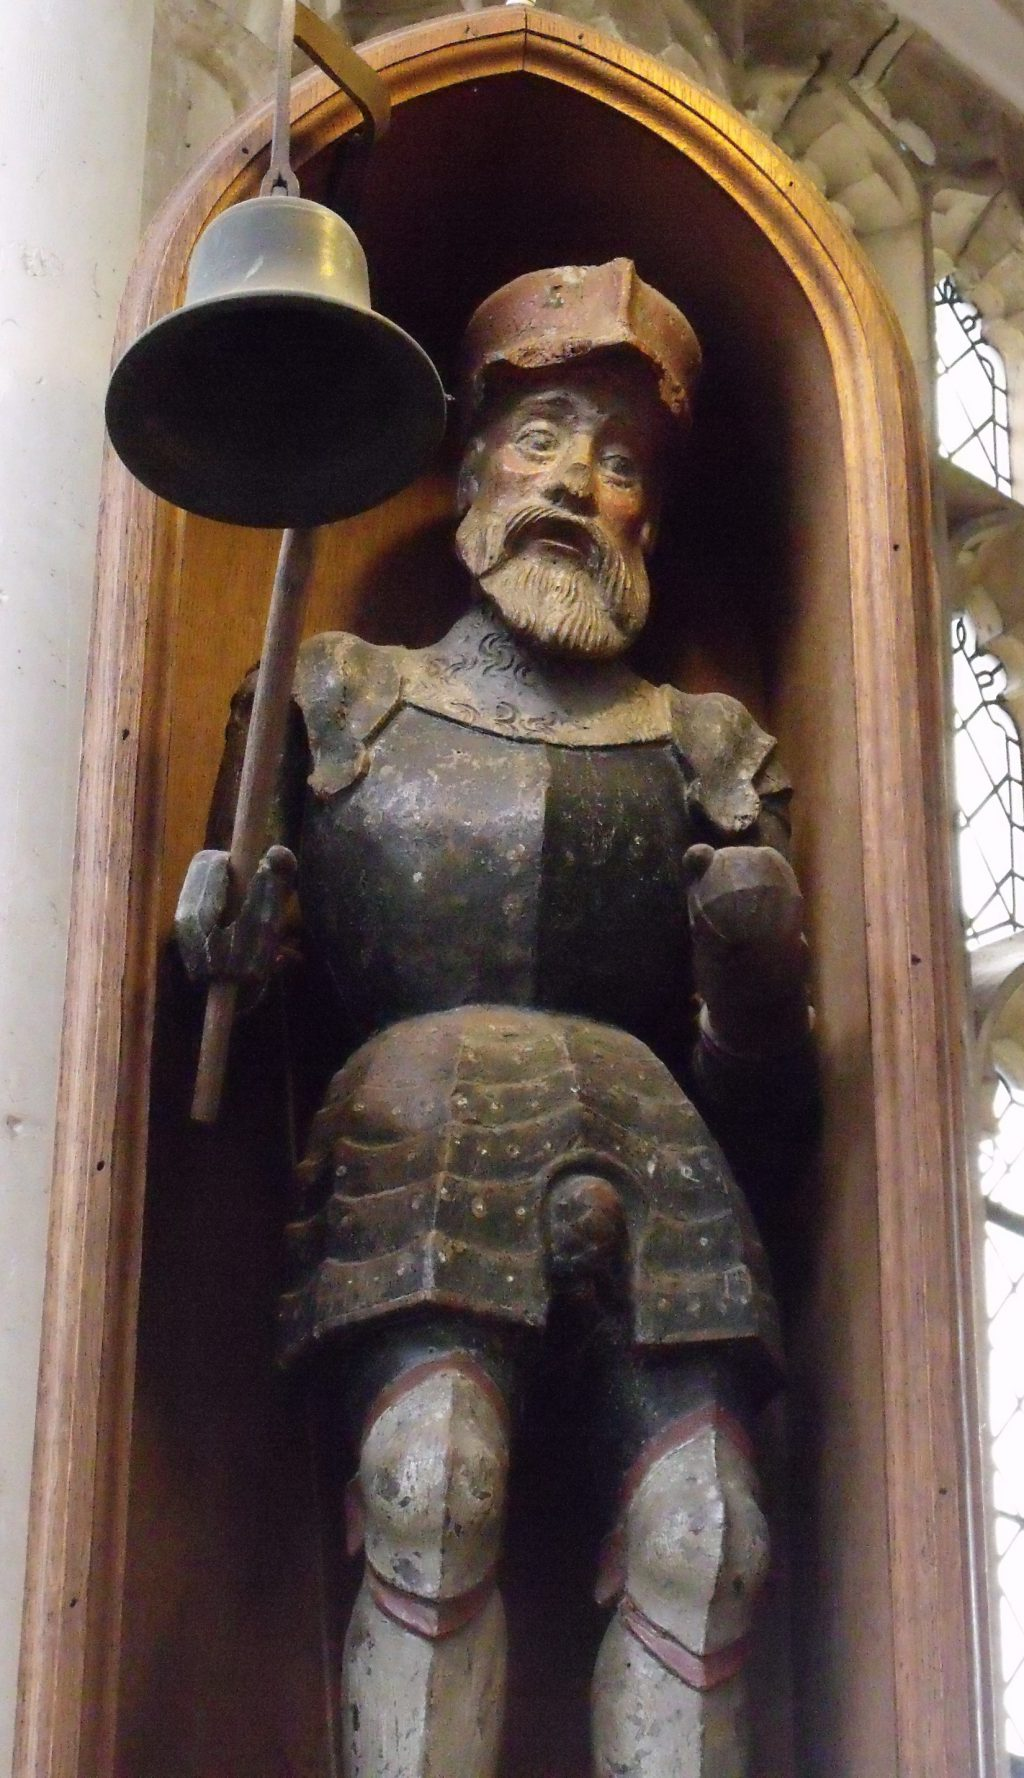 This little fellow used to strike the hour with his bell. Discover him in Blythburgh church.